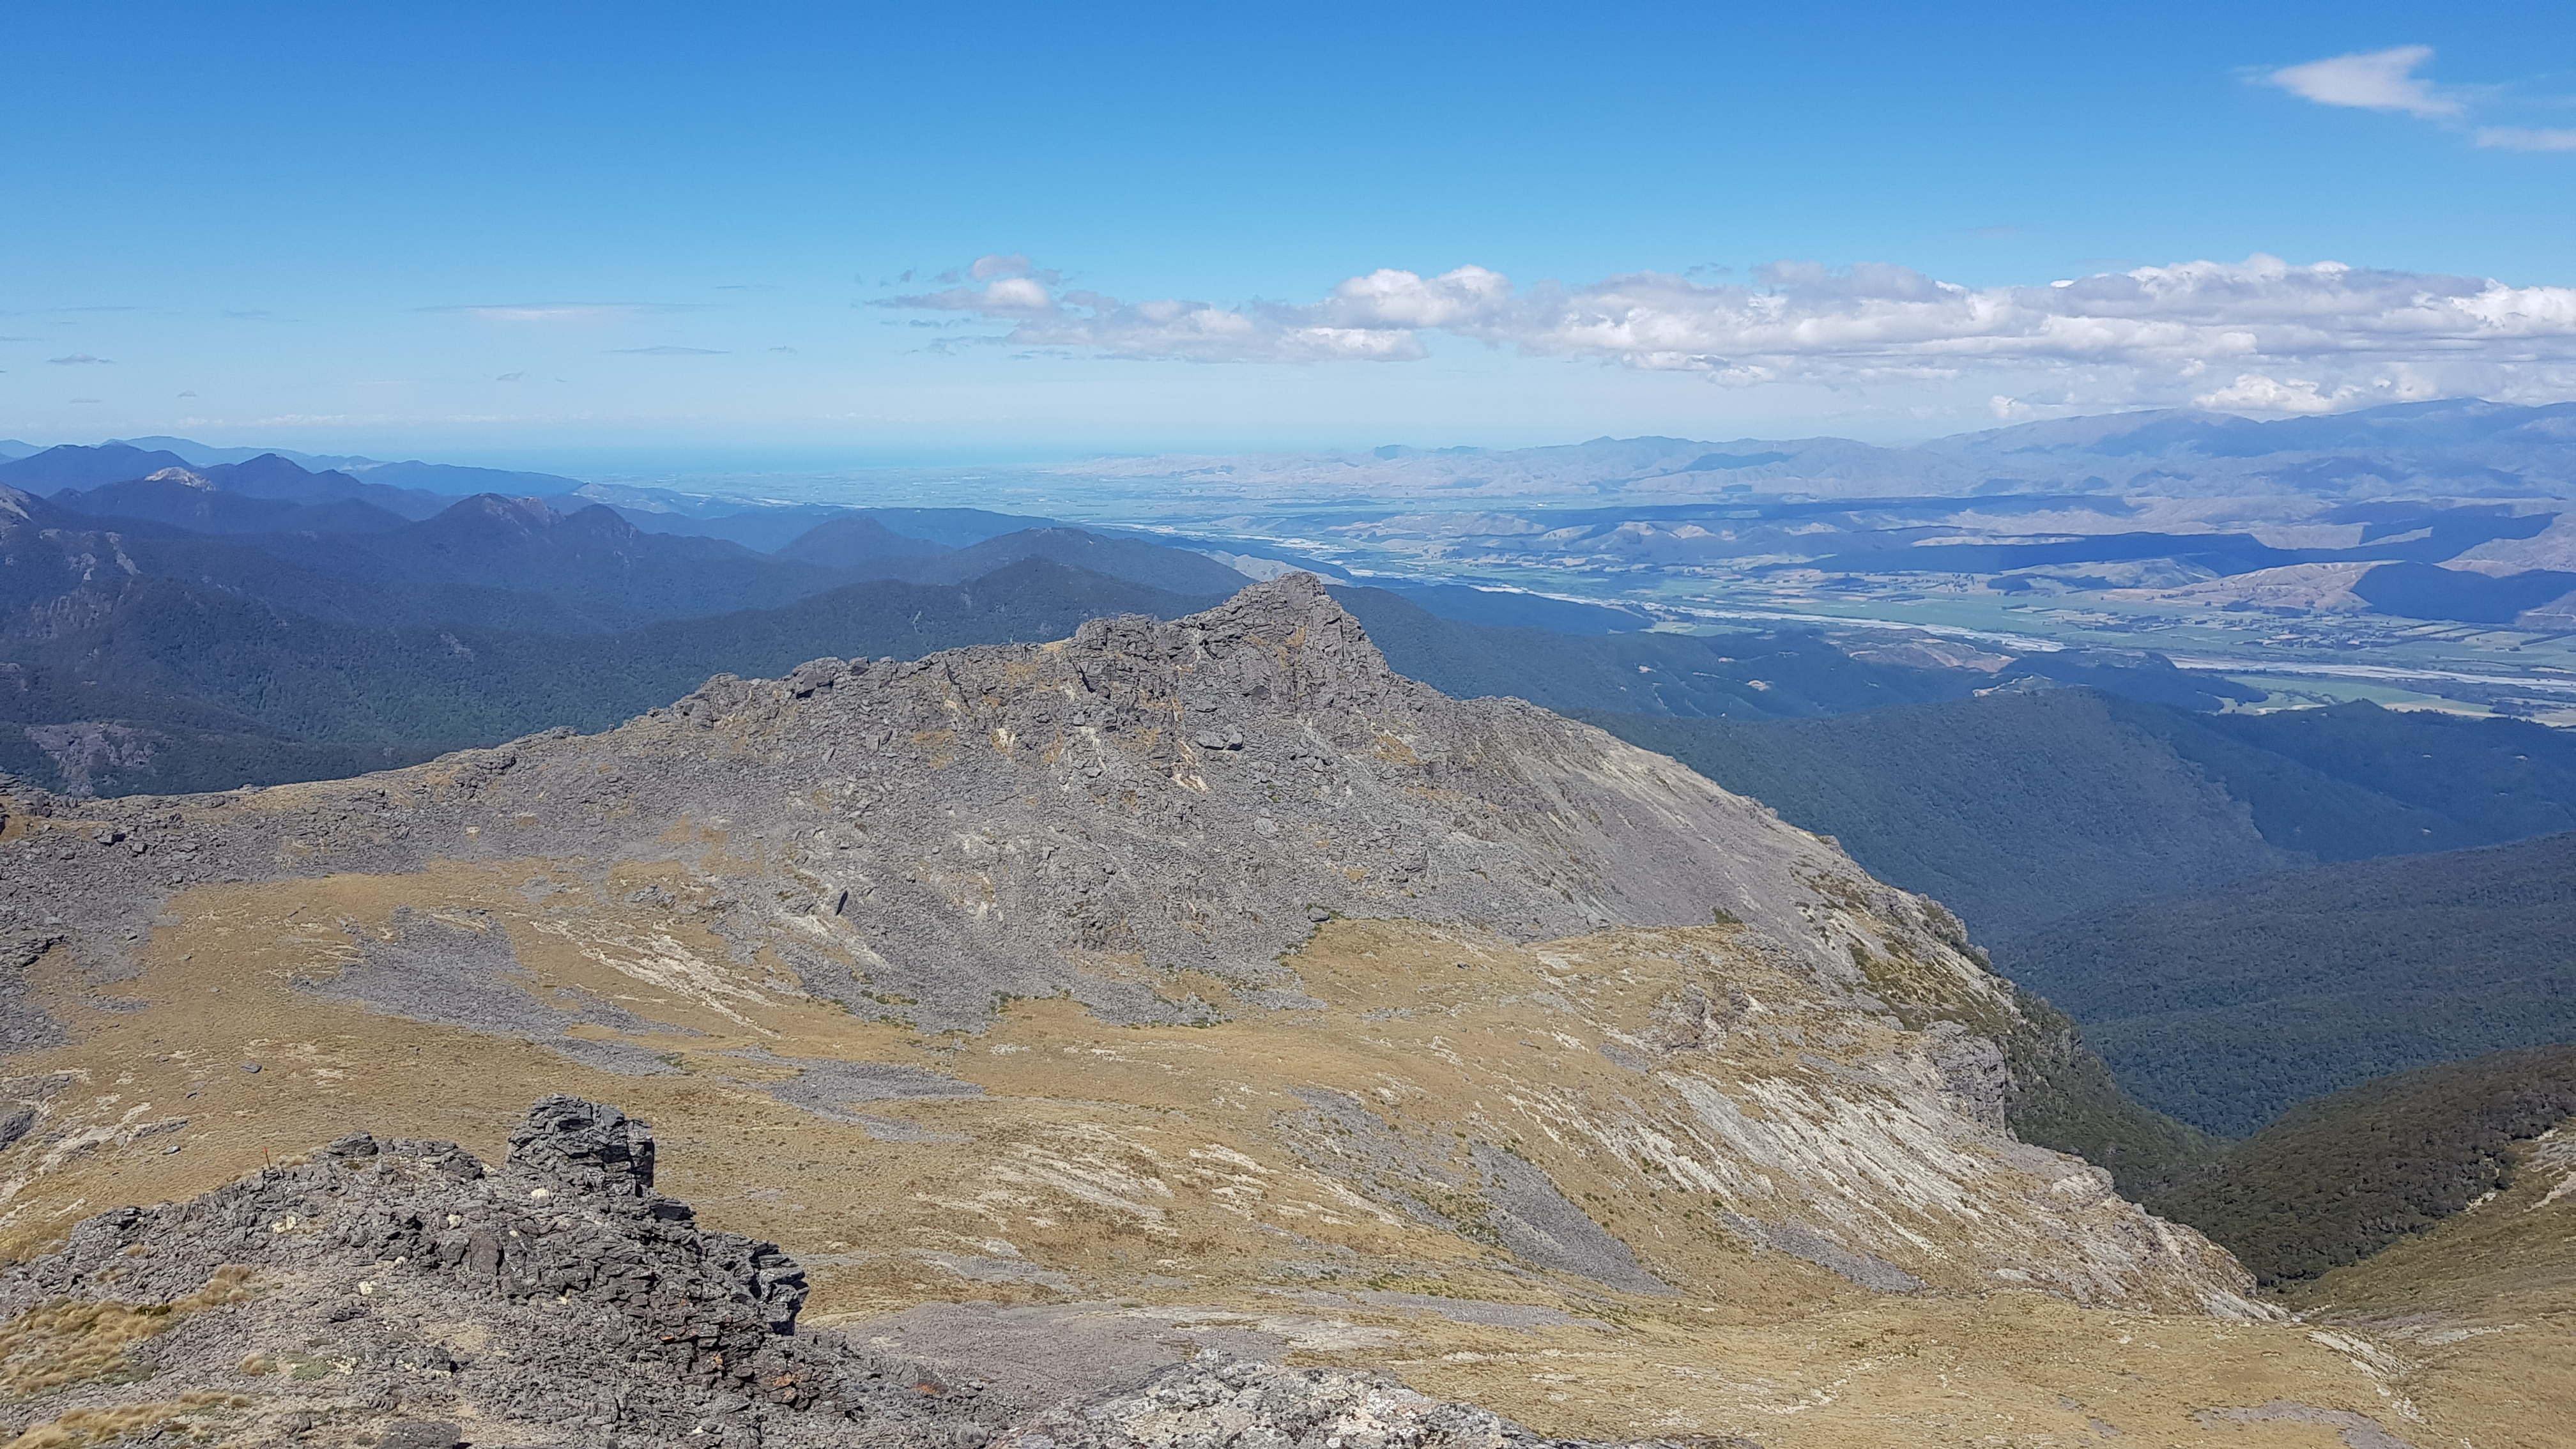 Johnston Peak and the Wairau River Valley from Mount Richmond